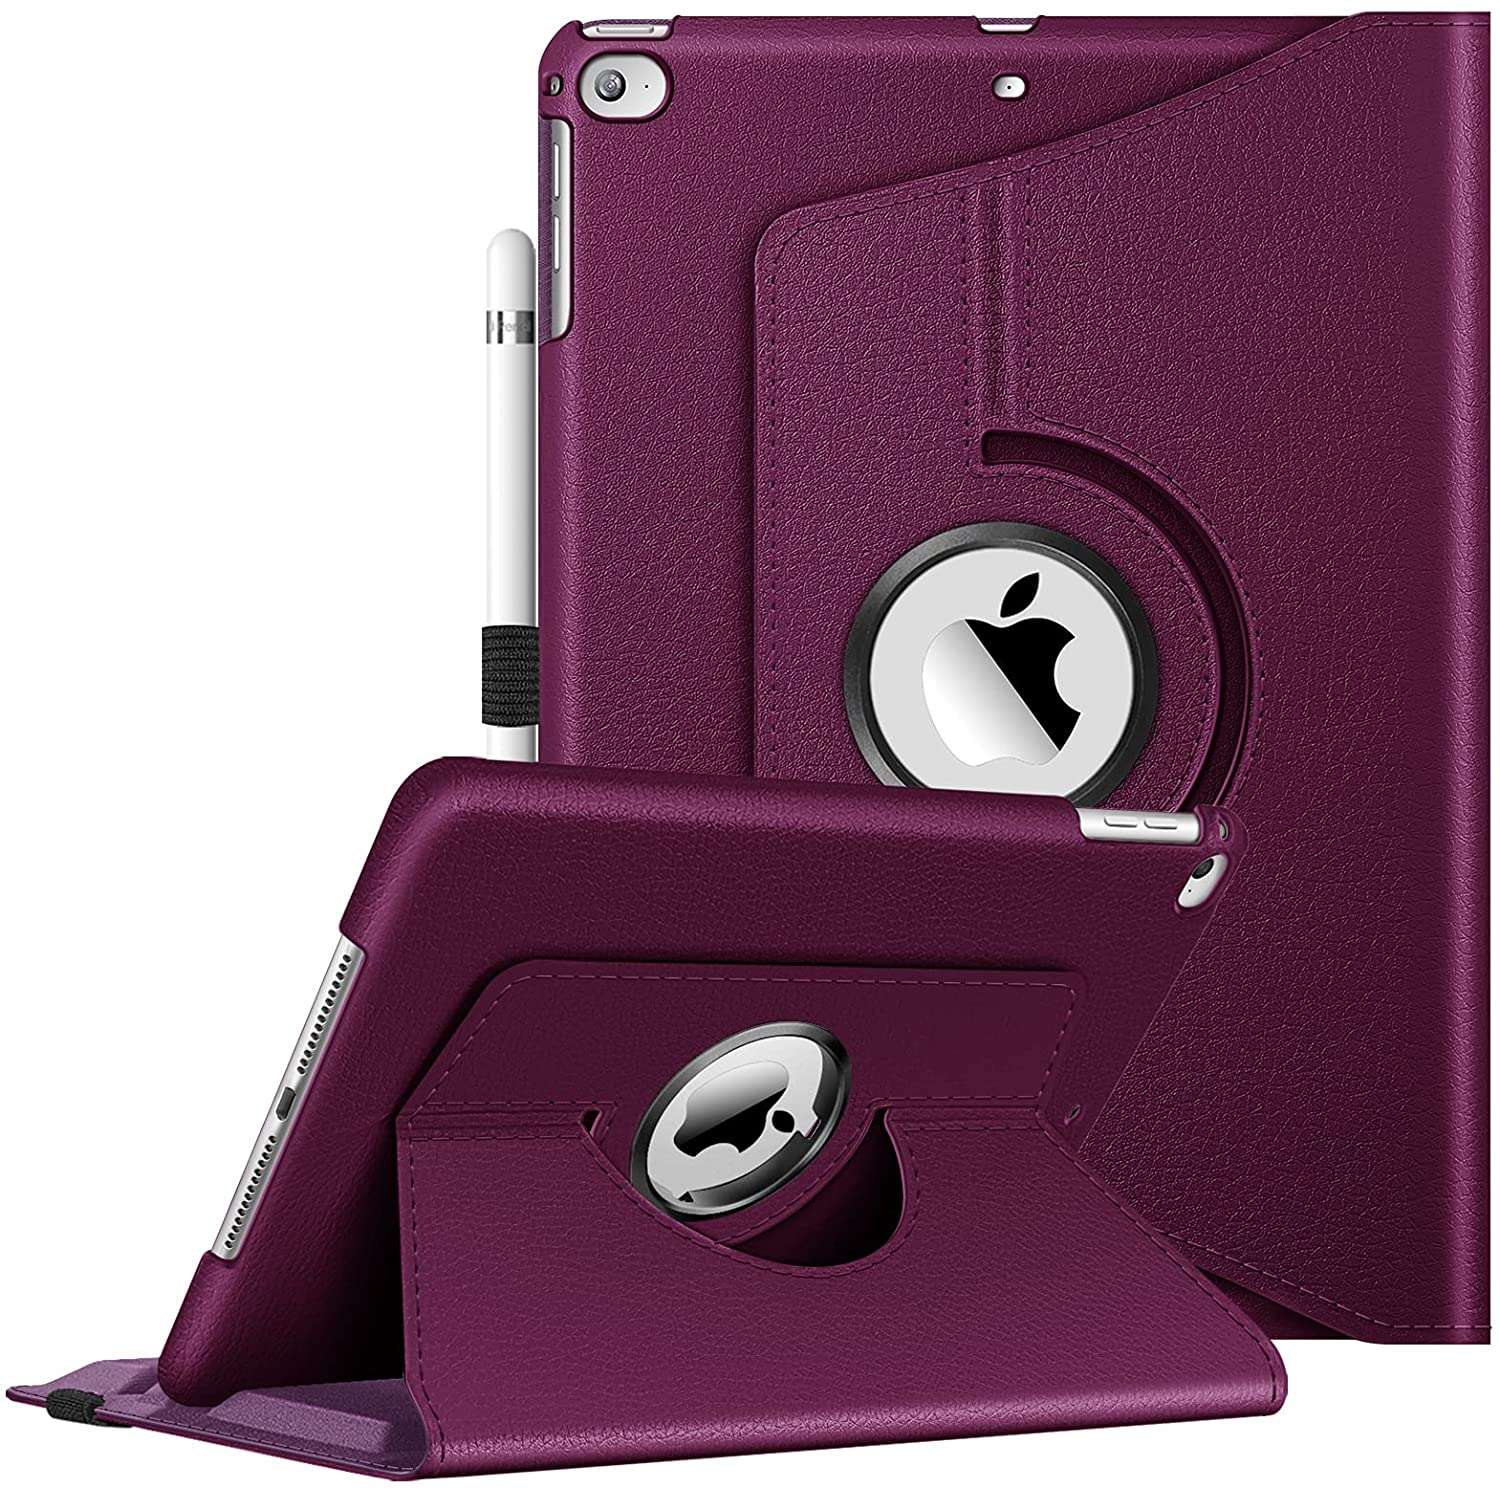 Fintie Case for iPad 9.7 Tampa Mall 2018 Bargain sale 2 2017 360 Air -